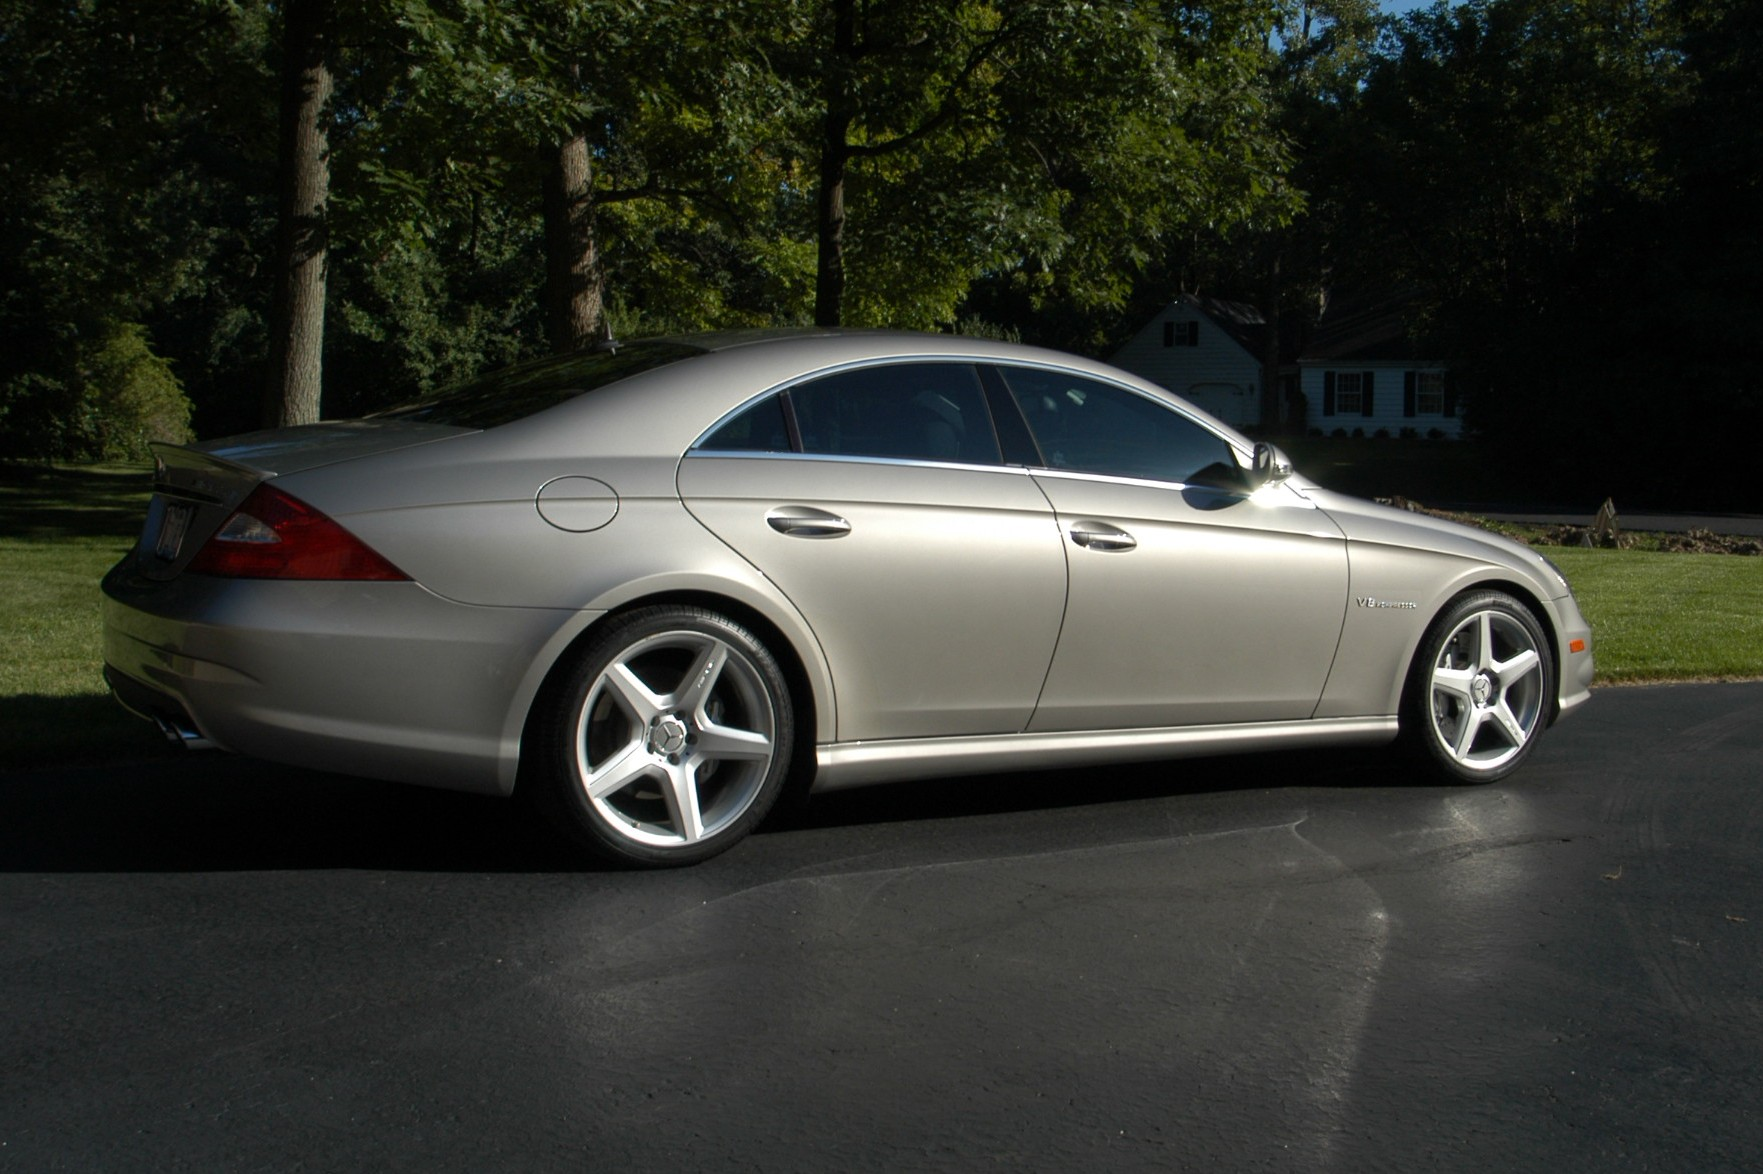 Stock 2006 mercedes benz cls55 amg 1 4 mile drag racing for 2006 mercedes benz cls55 amg